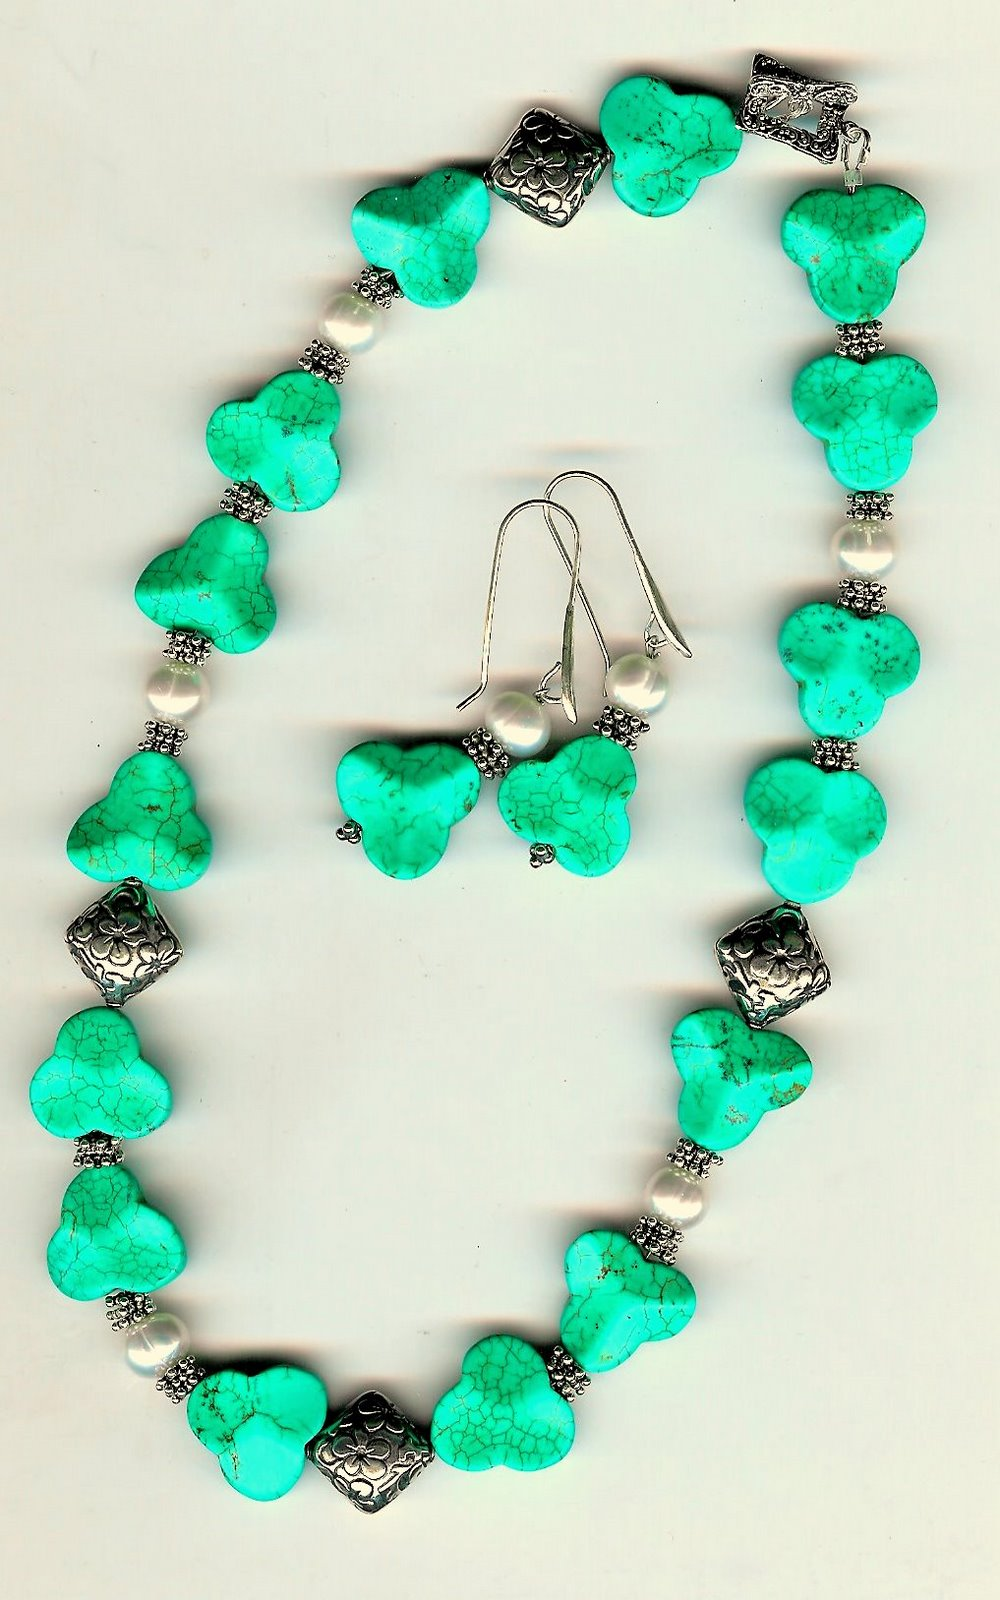 113. Carved Turquoise, Freshwater Pearls with Bali Sterling Silver + Earrings